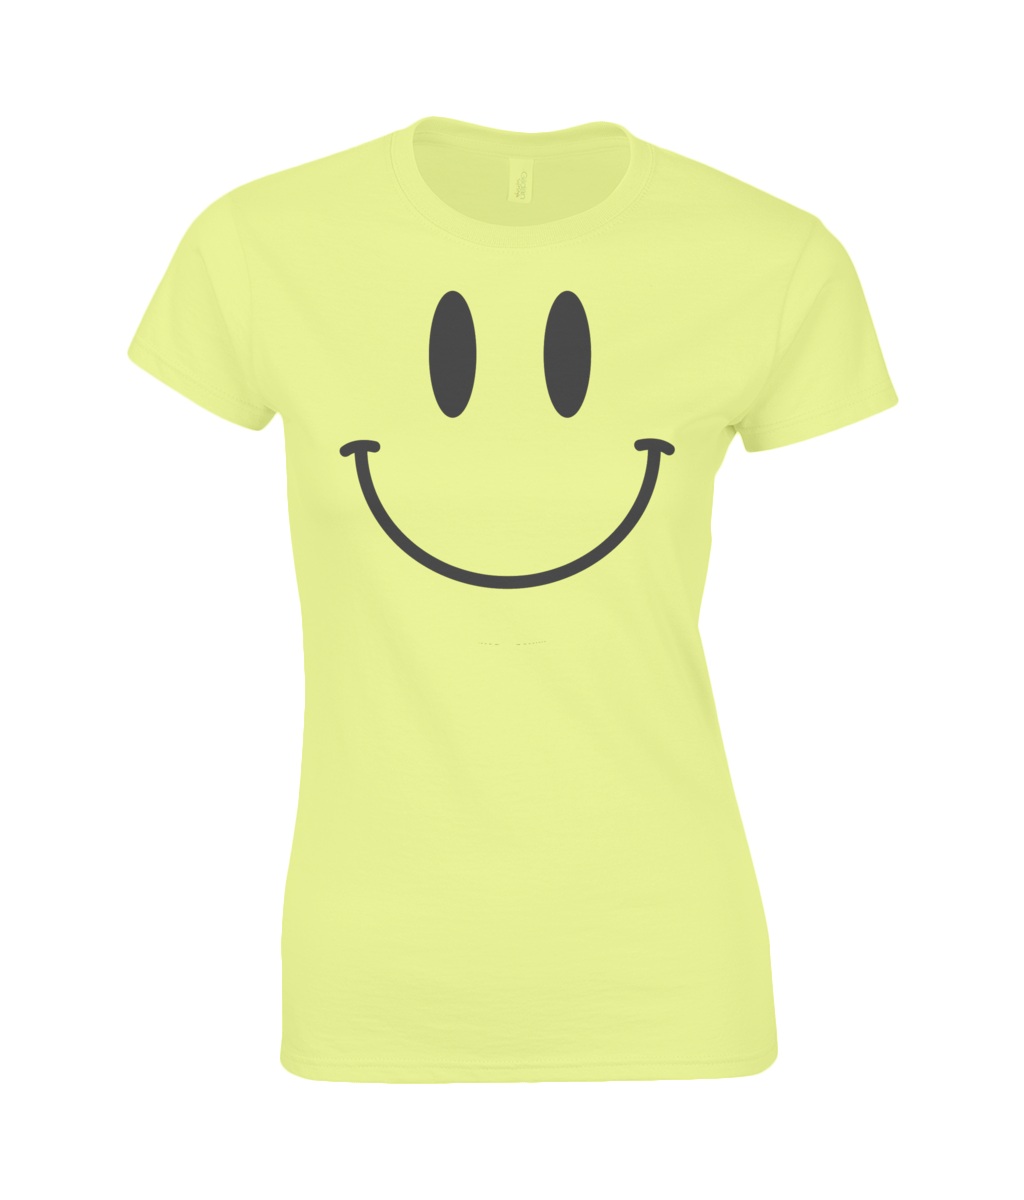 Smiley Face Yellow Ladies Premium Cotton T-Shirt